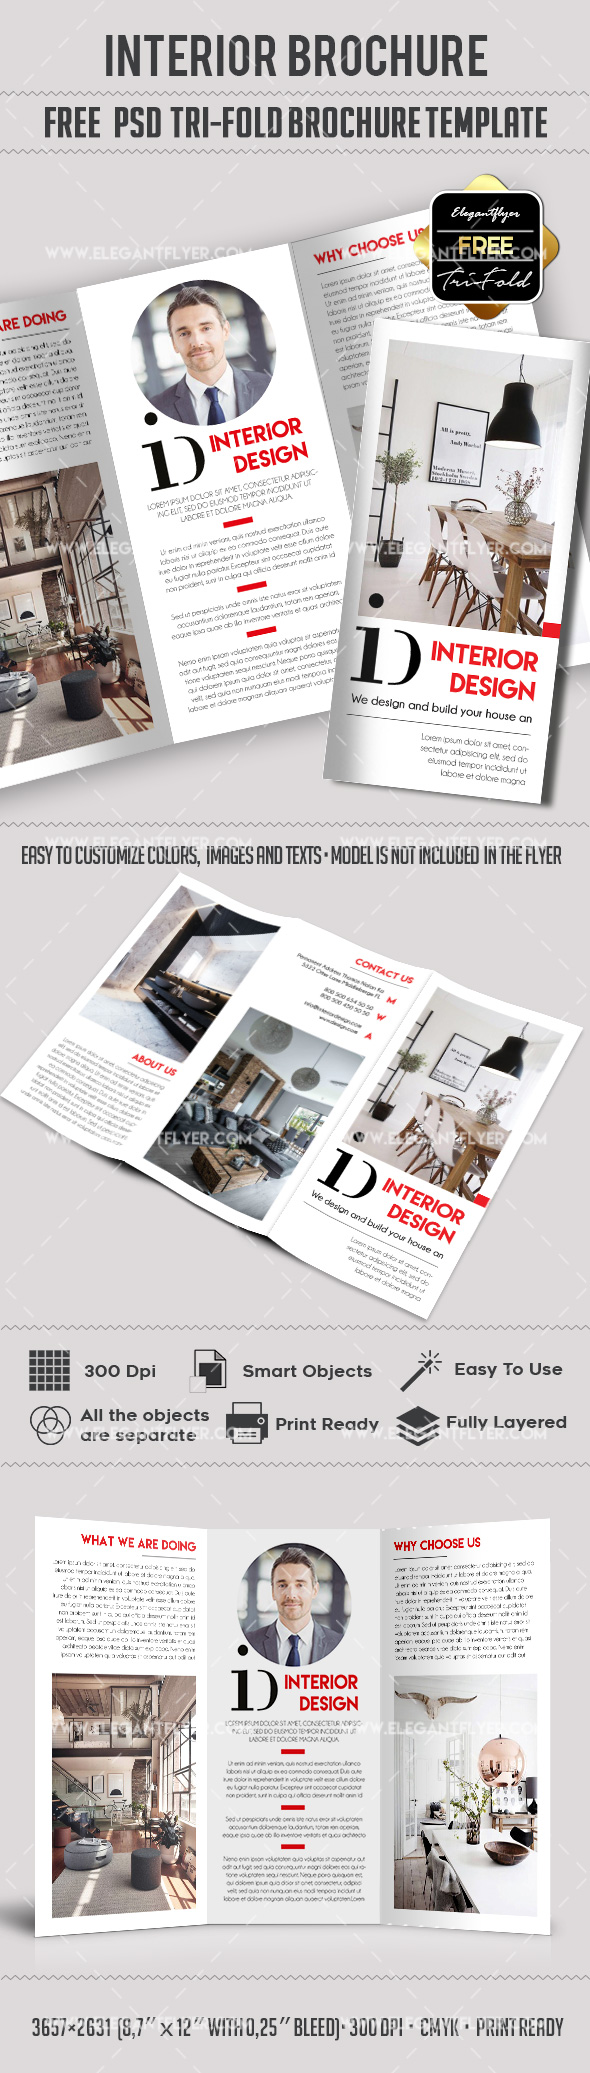 Interior design free tri fold brochure by elegantflyer for Brochure photoshop templates